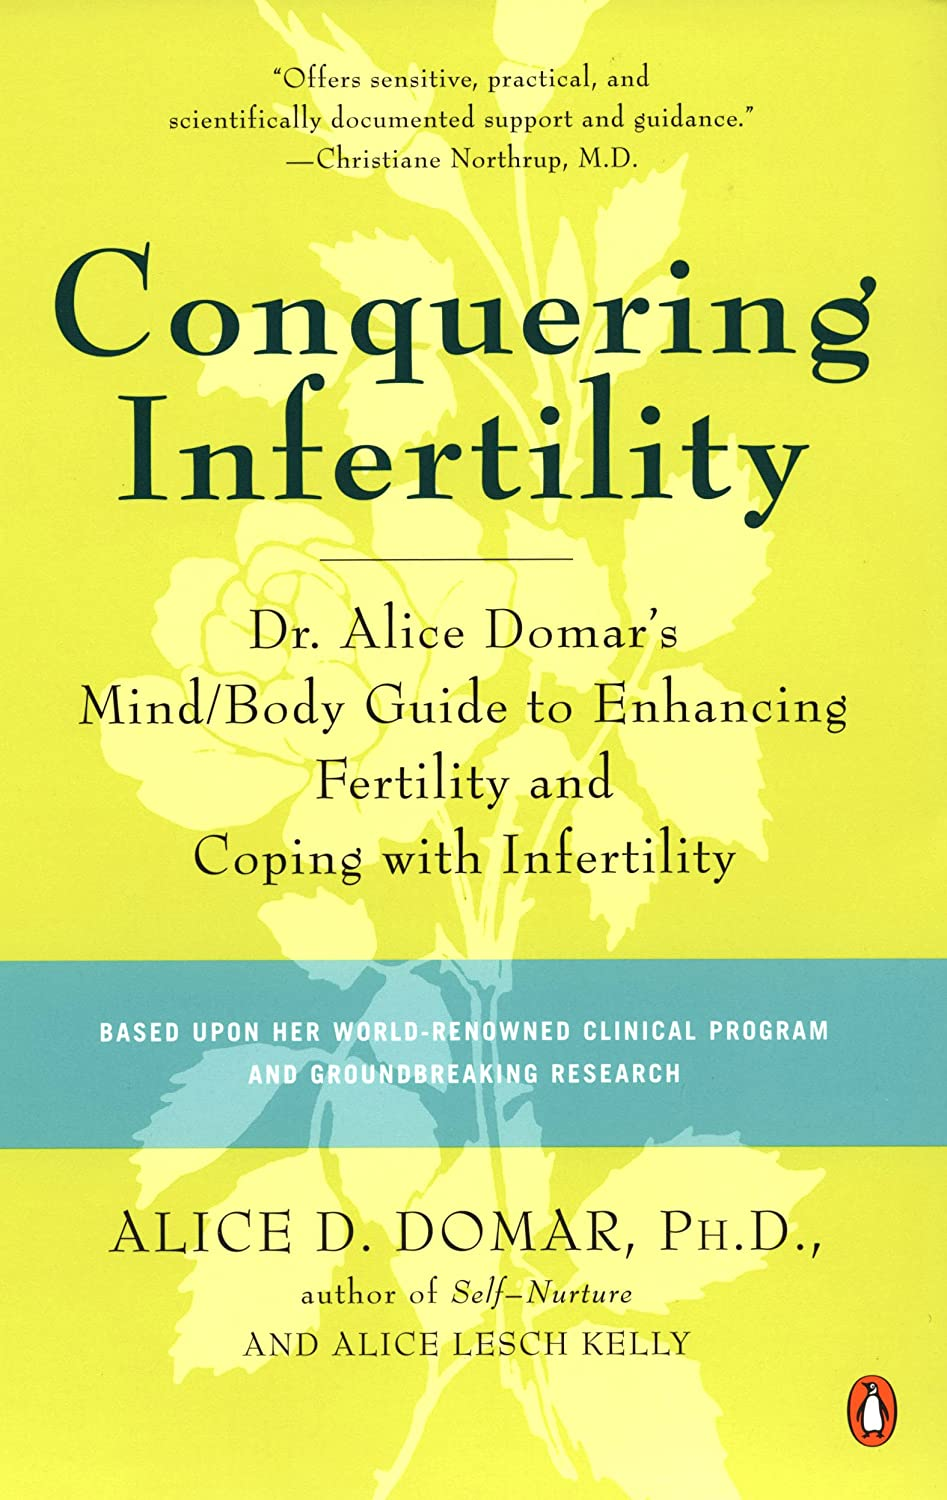 Image: Conquering Infertility: Dr. Alice Domar's Mind/Body Guide to Enhancing Fertility and Coping with Infertility, by Alice D. Domar and Alice Lesch Kelly. Publisher: Penguin Books (February 24, 2004)